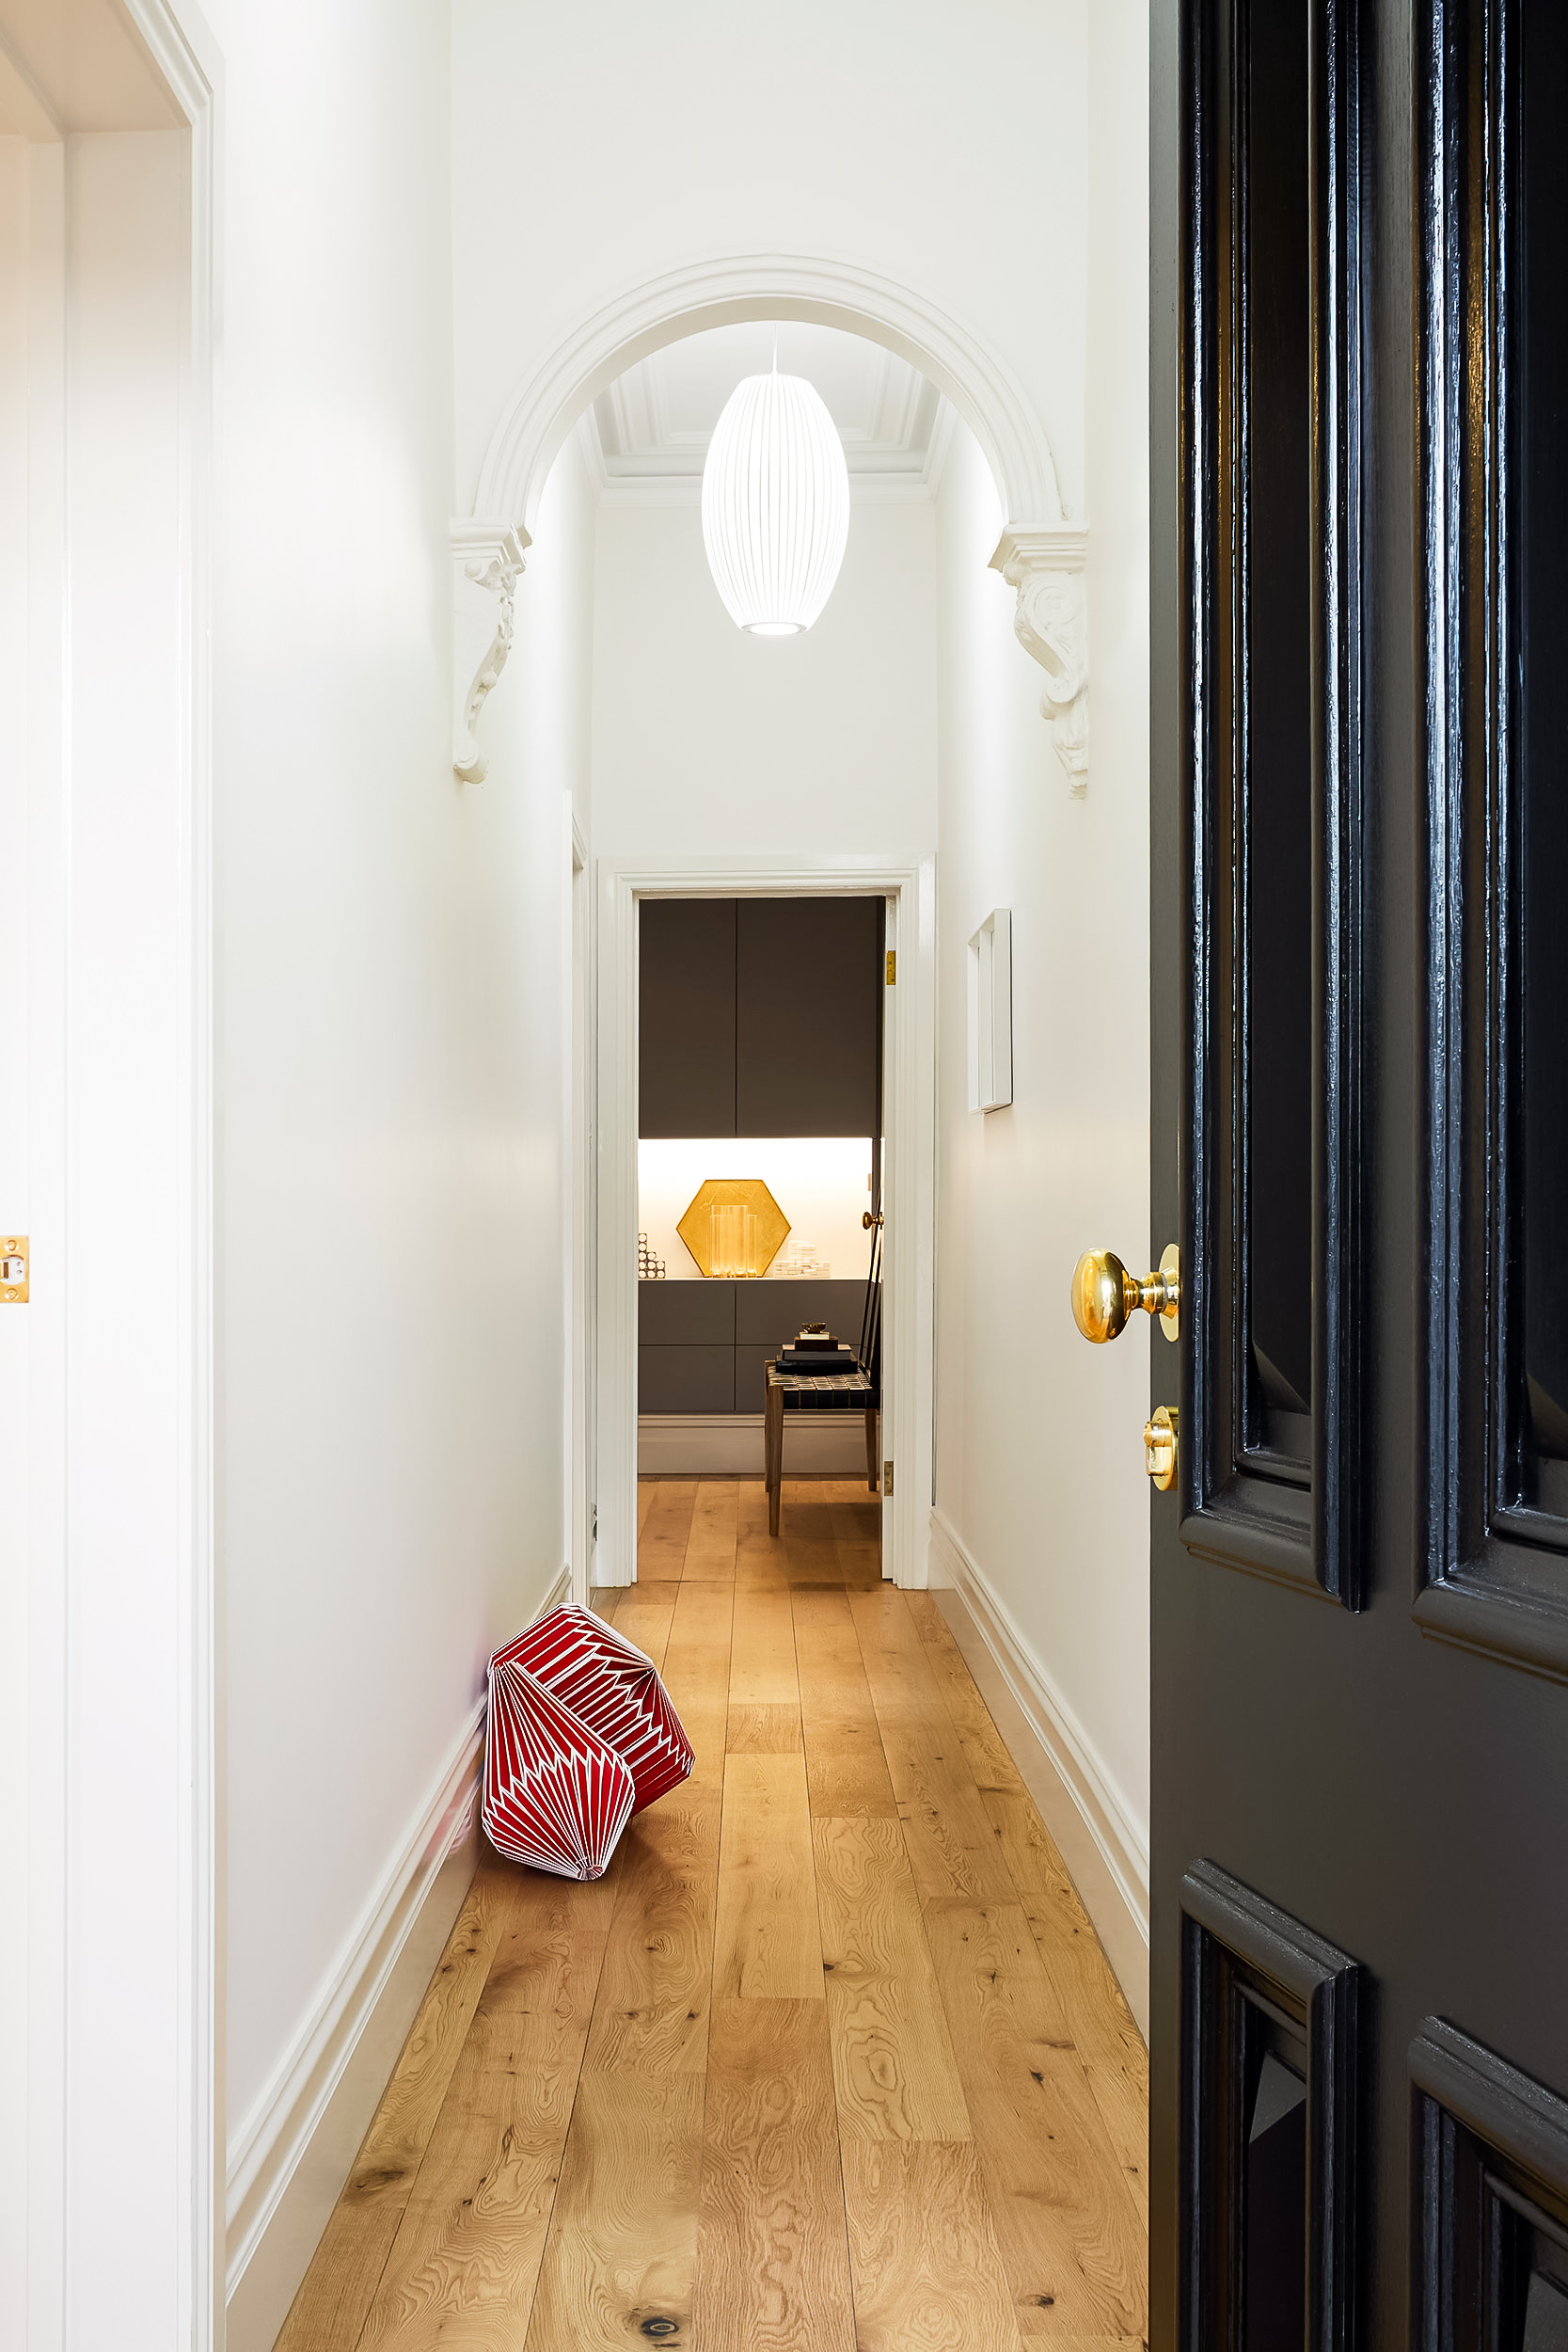 Walls, Dulux paint; colour: natural white.   Royal Oak floors South Yarra; architect collection, American oak aged smoked.